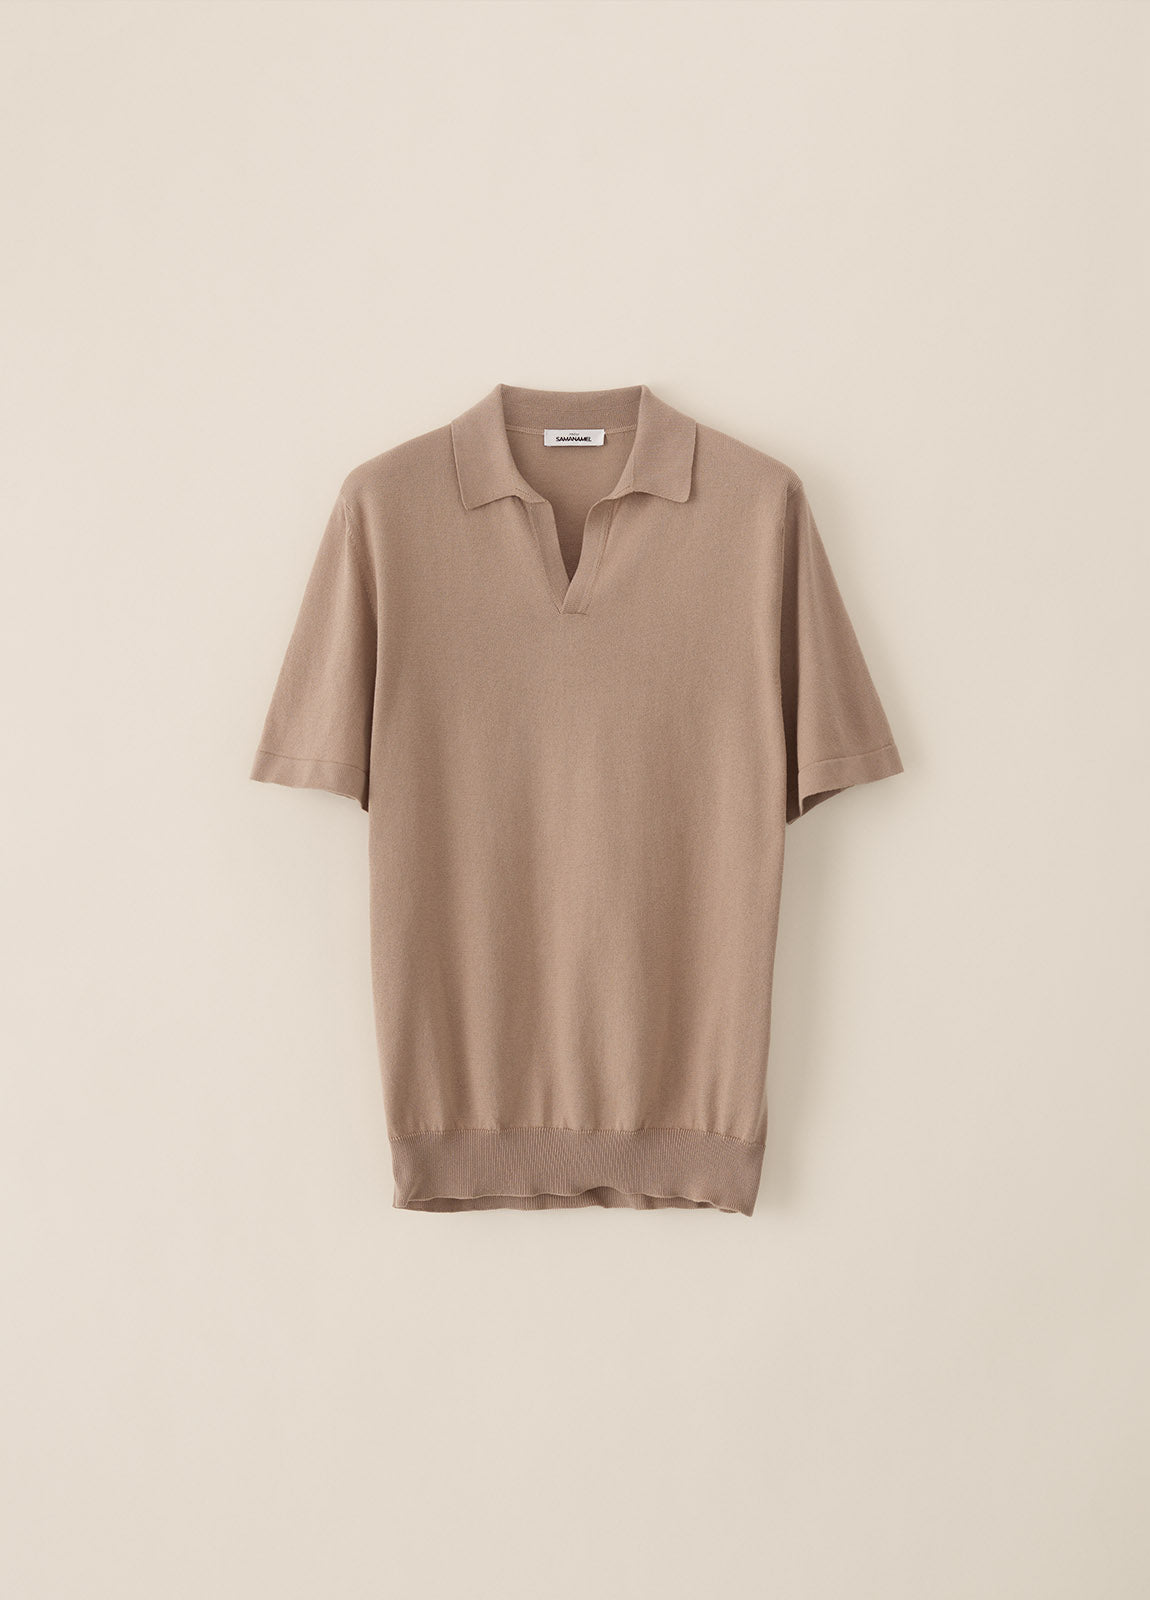 Amo Tennis Cotton - Beige